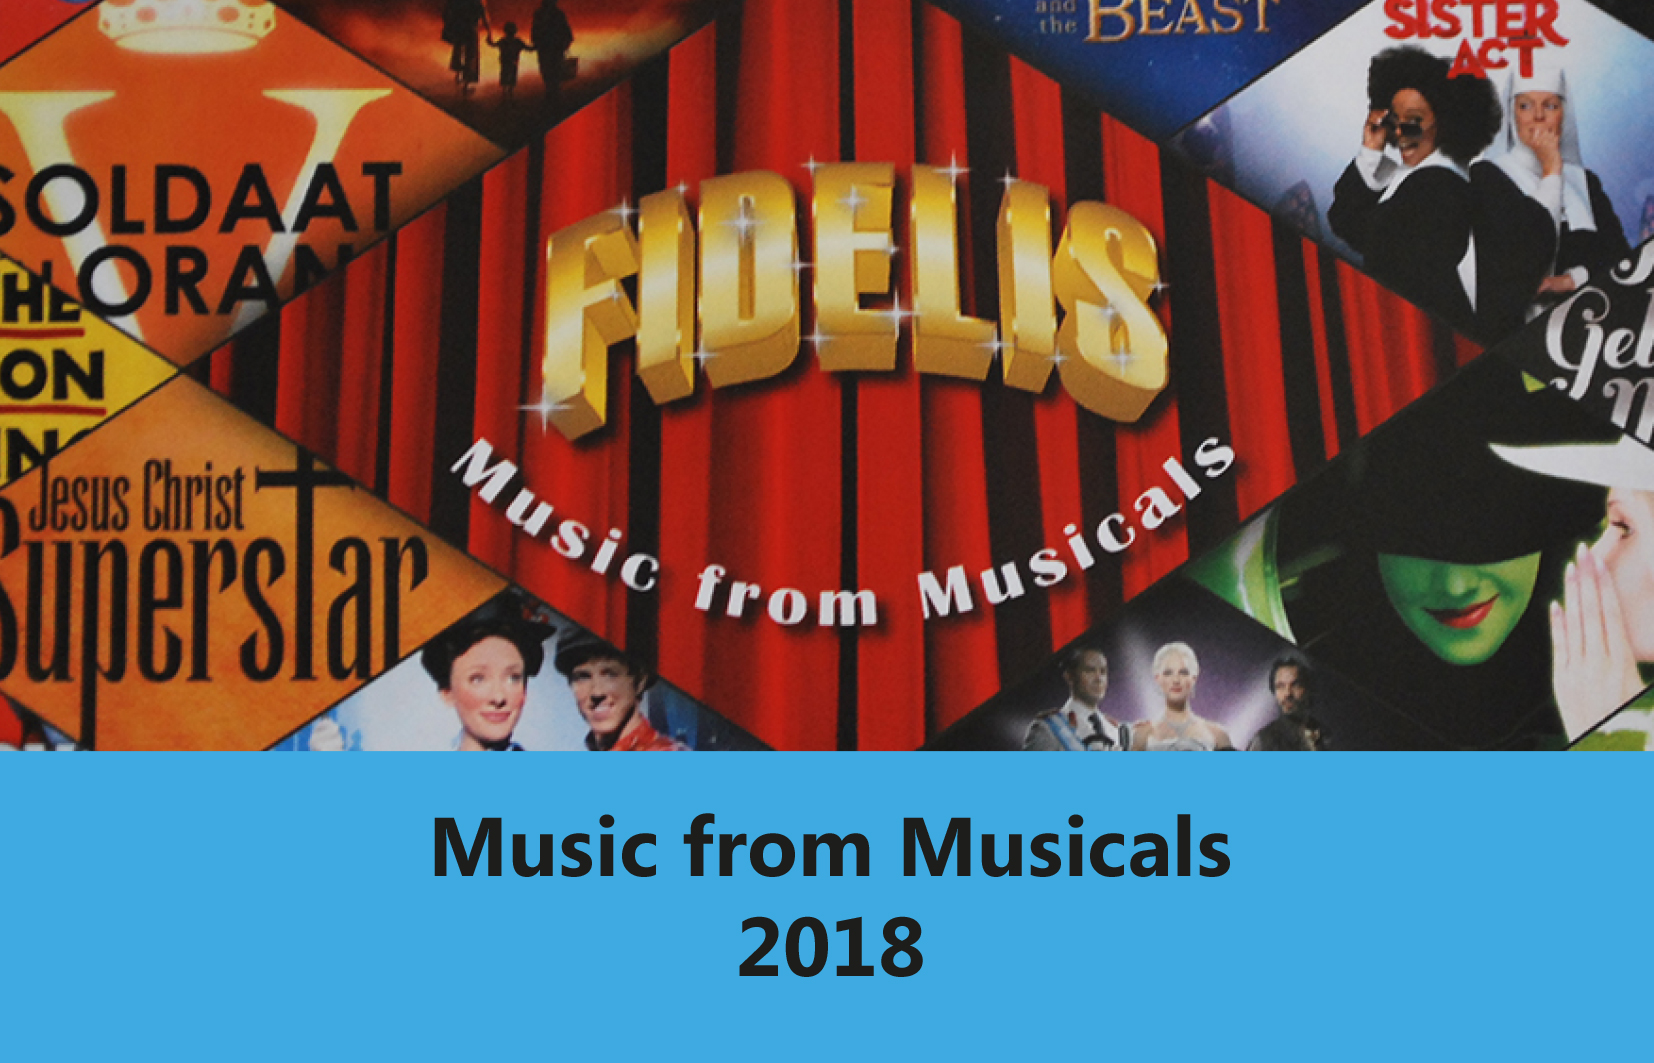 Music from Musicals 2018